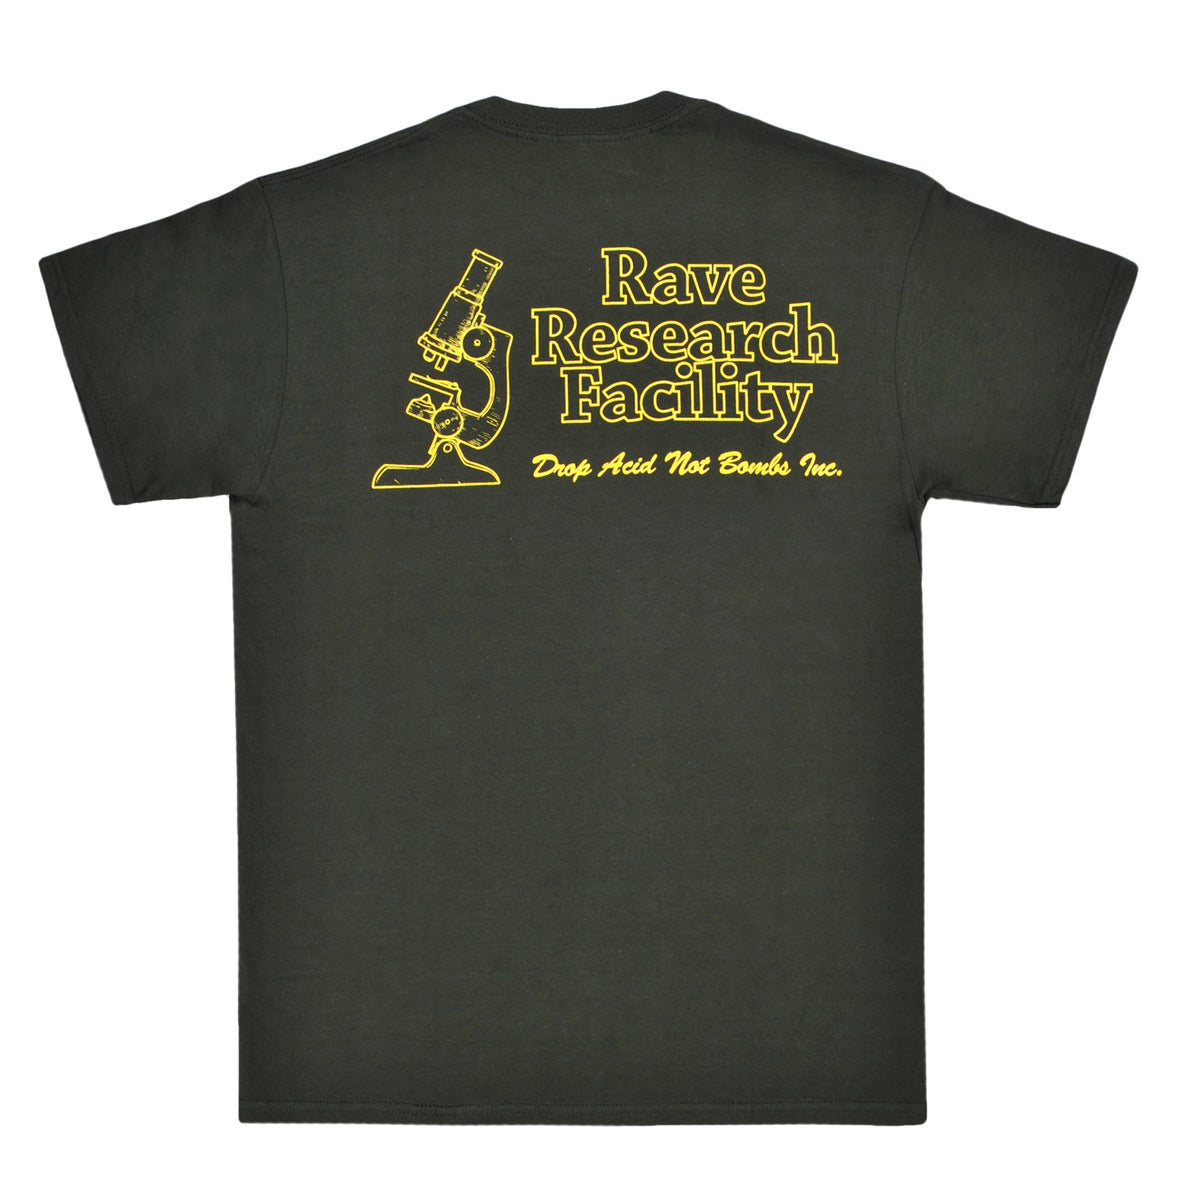 RAVE RESEARCH FACILITY forest tee - RAVE skateboards